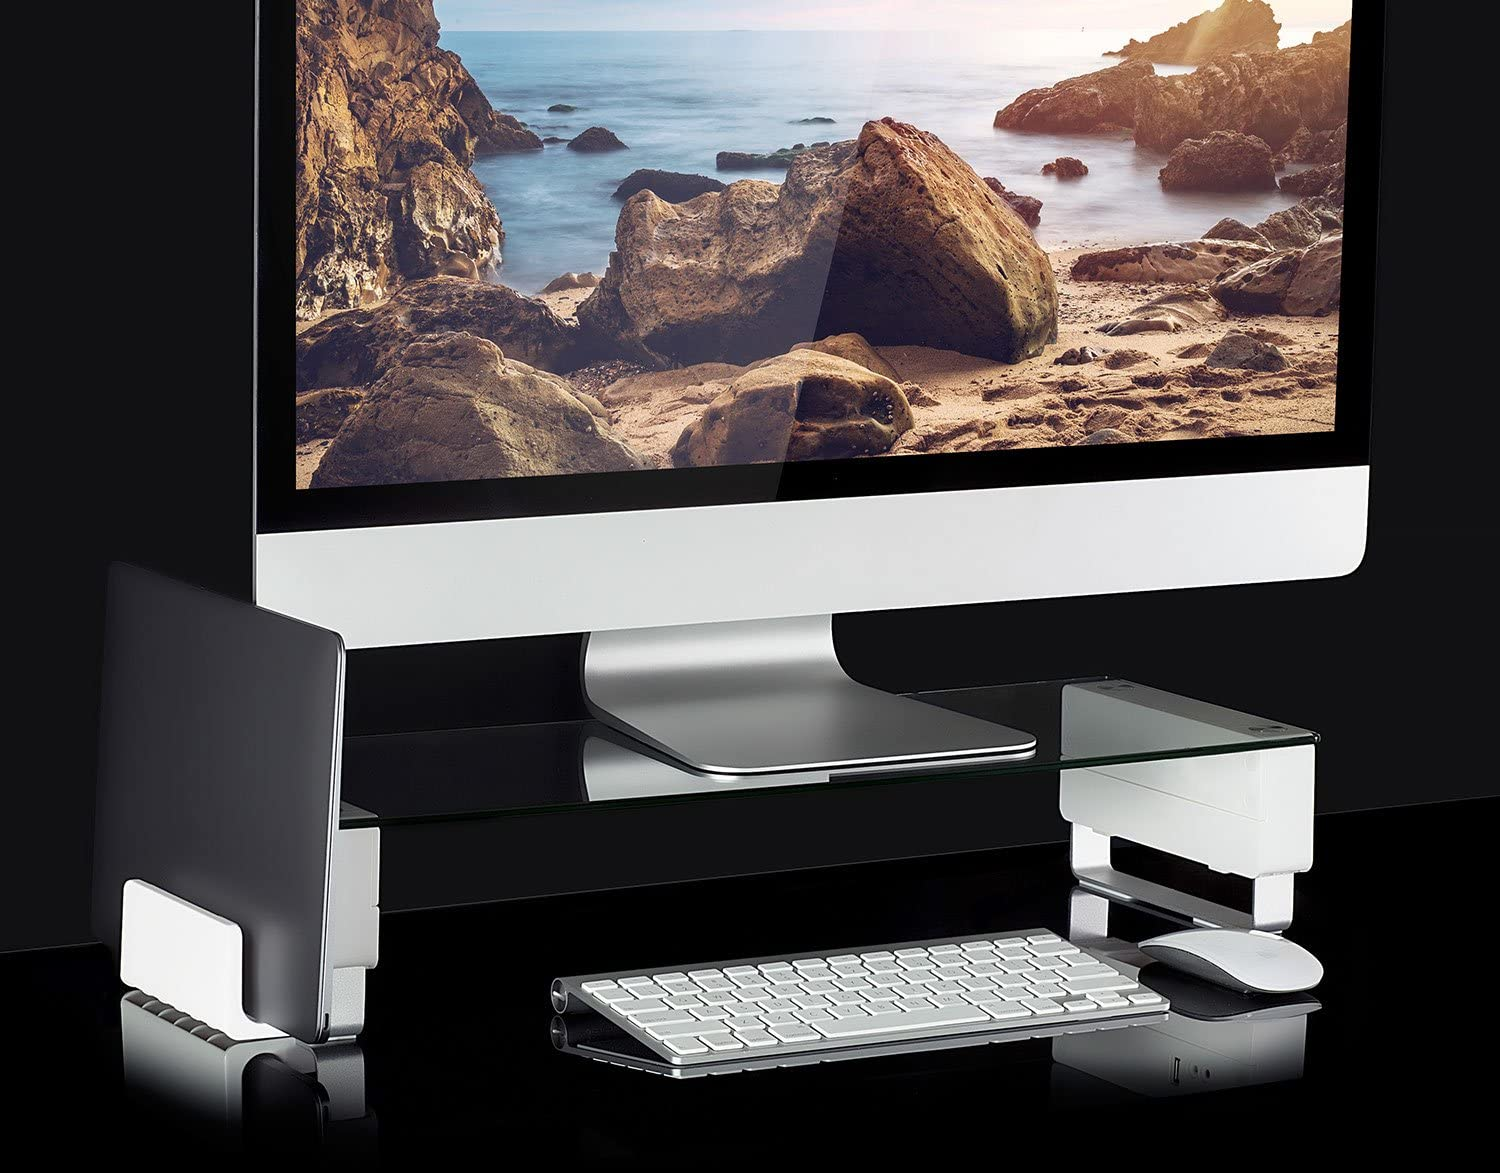 Mount-It! Glass Monitor Stand with Vertical Laptop Holder   Computer Desktop Riser, Clear Tempered Glass Brushed Aluminum Legs, Fits 24, 27, 30, 32 Inch Screens, 66 Lbs Capacity